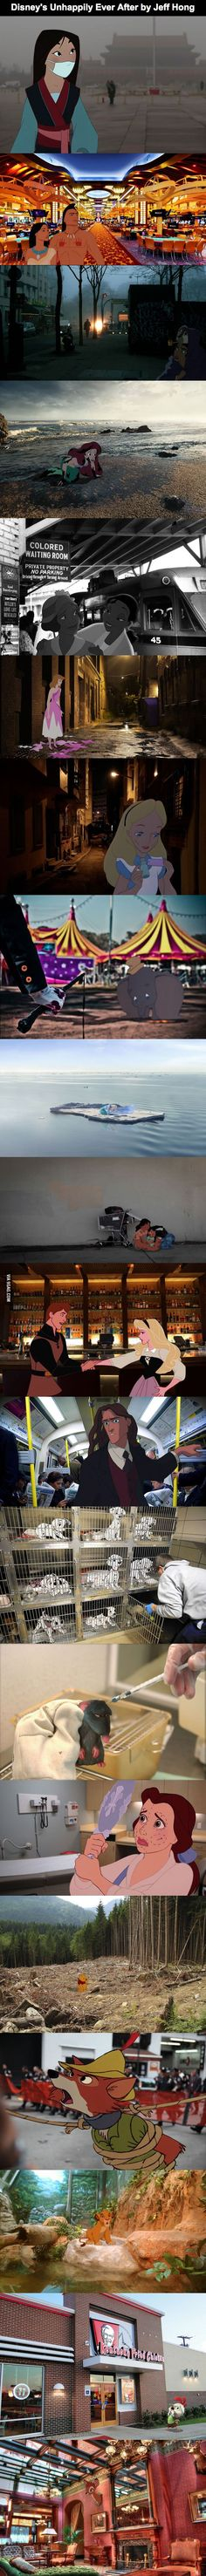 Disneys Unhappily Ever After - 9GAG Warning: May destroy childhood memories Sad and Dramatic real live!